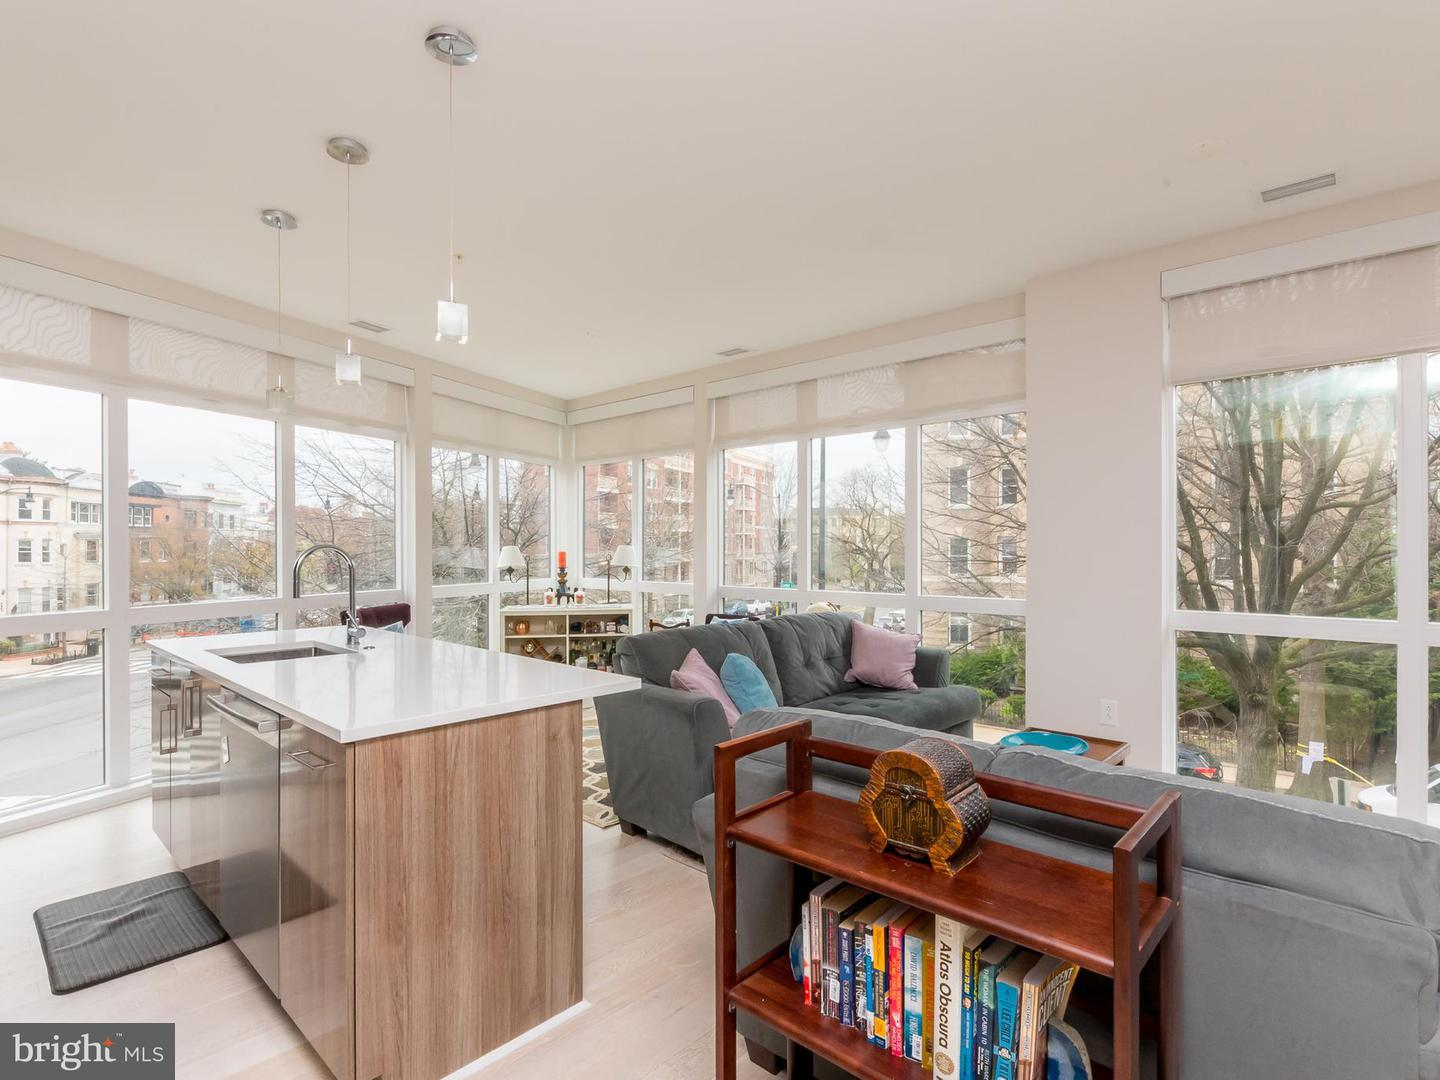 Other Residential for Rent at 1794 Lanier Pl NW #204 Washington, District Of Columbia 20009 United States